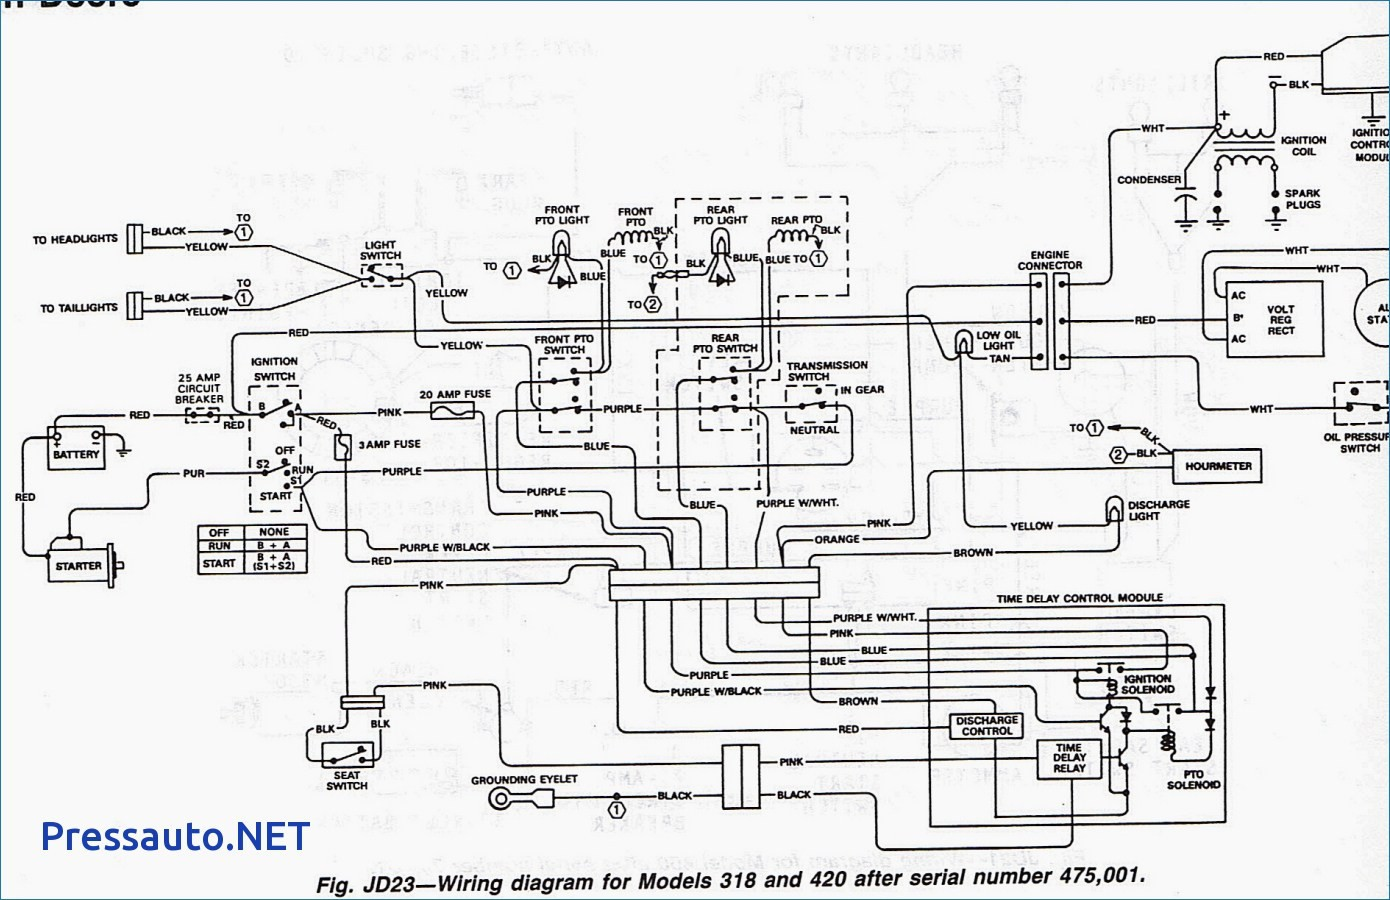 Wiring Diagram For John Deere | Wiring Diagram on internet of things diagrams, sincgars radio configurations diagrams, friendship bracelet diagrams, battery diagrams, motor diagrams, switch diagrams, smart car diagrams, led circuit diagrams, transformer diagrams, gmc fuse box diagrams, series and parallel circuits diagrams, engine diagrams, electronic circuit diagrams, lighting diagrams, pinout diagrams, electrical diagrams, troubleshooting diagrams, honda motorcycle repair diagrams, hvac diagrams,